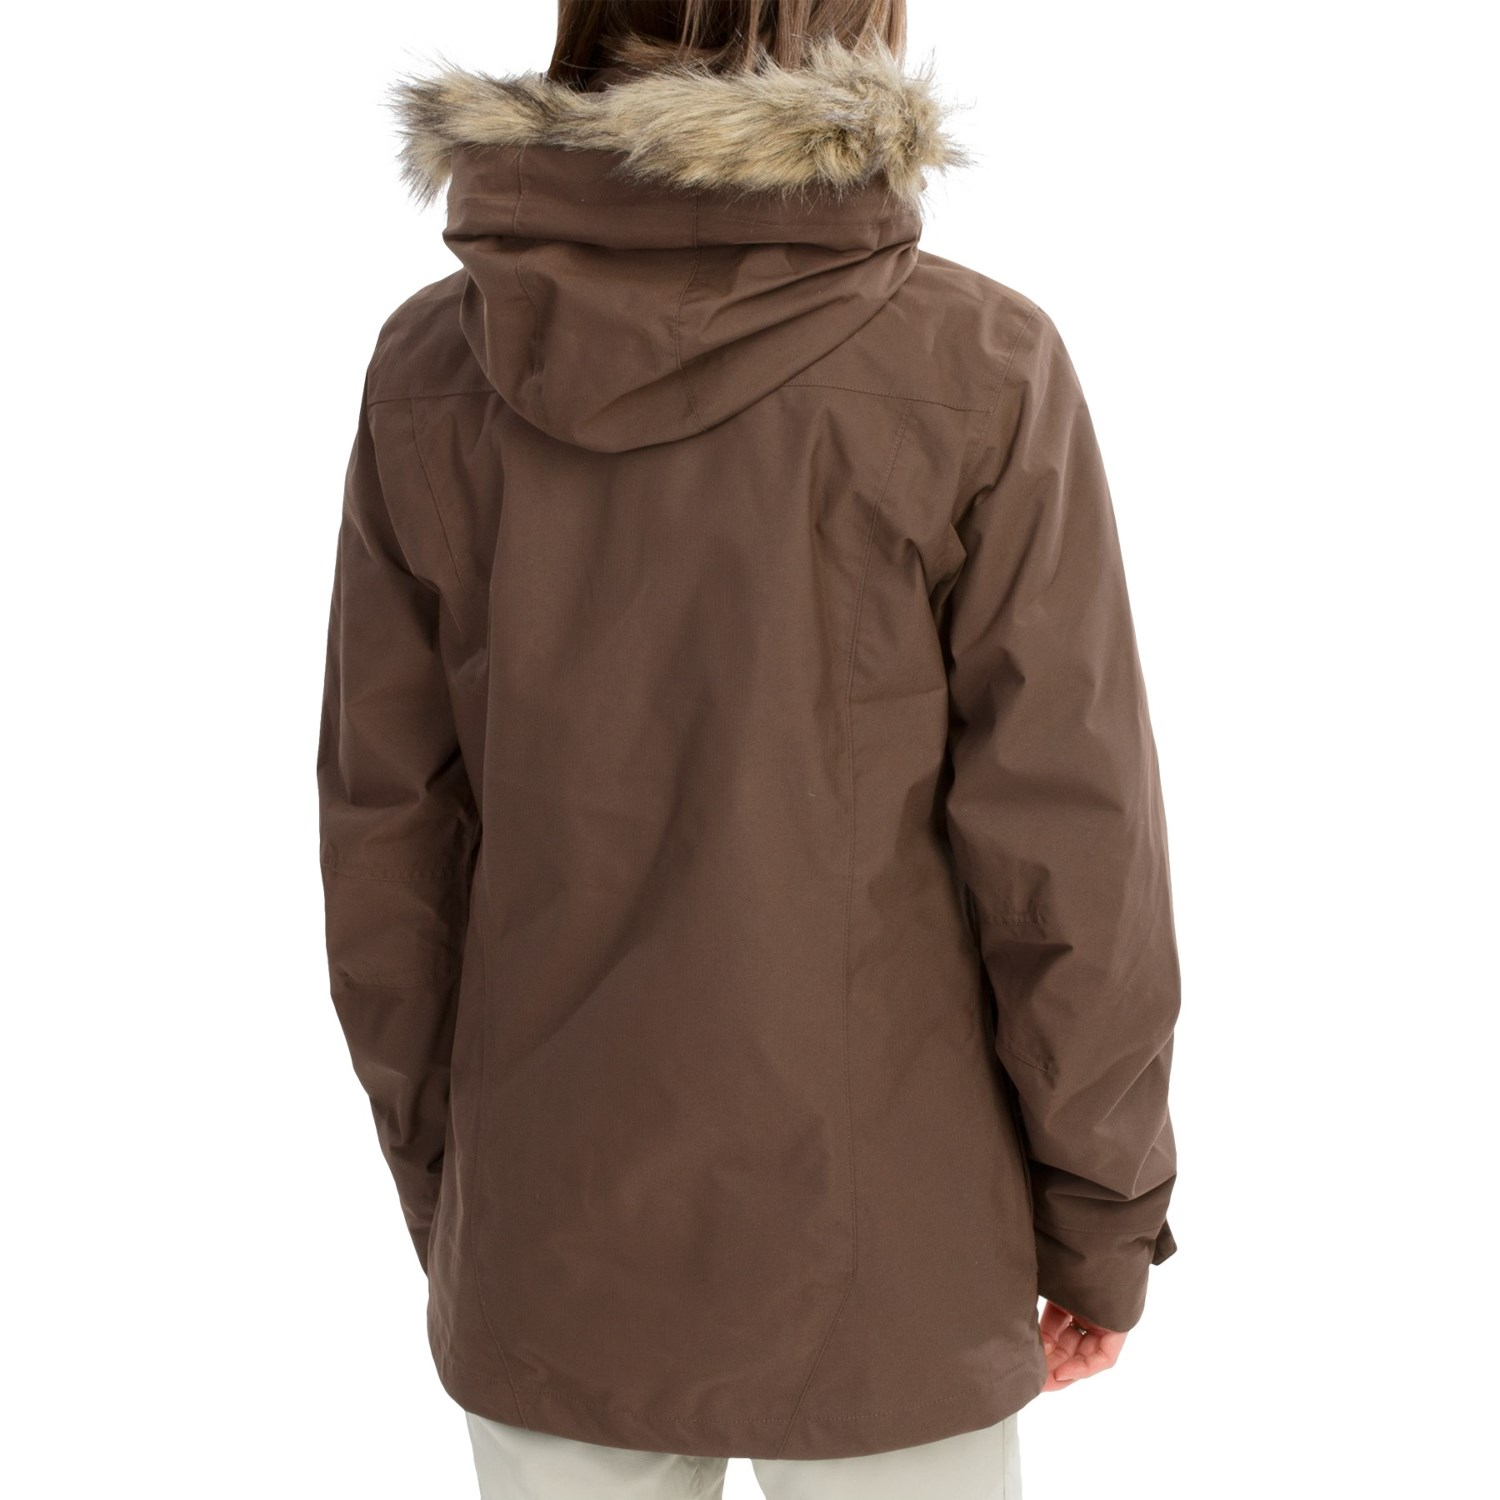 corner brook women Find quality new and used clothing and fashion locally in corner brook prom  dresses  for sale women's canada goose coat size small purple in colour.